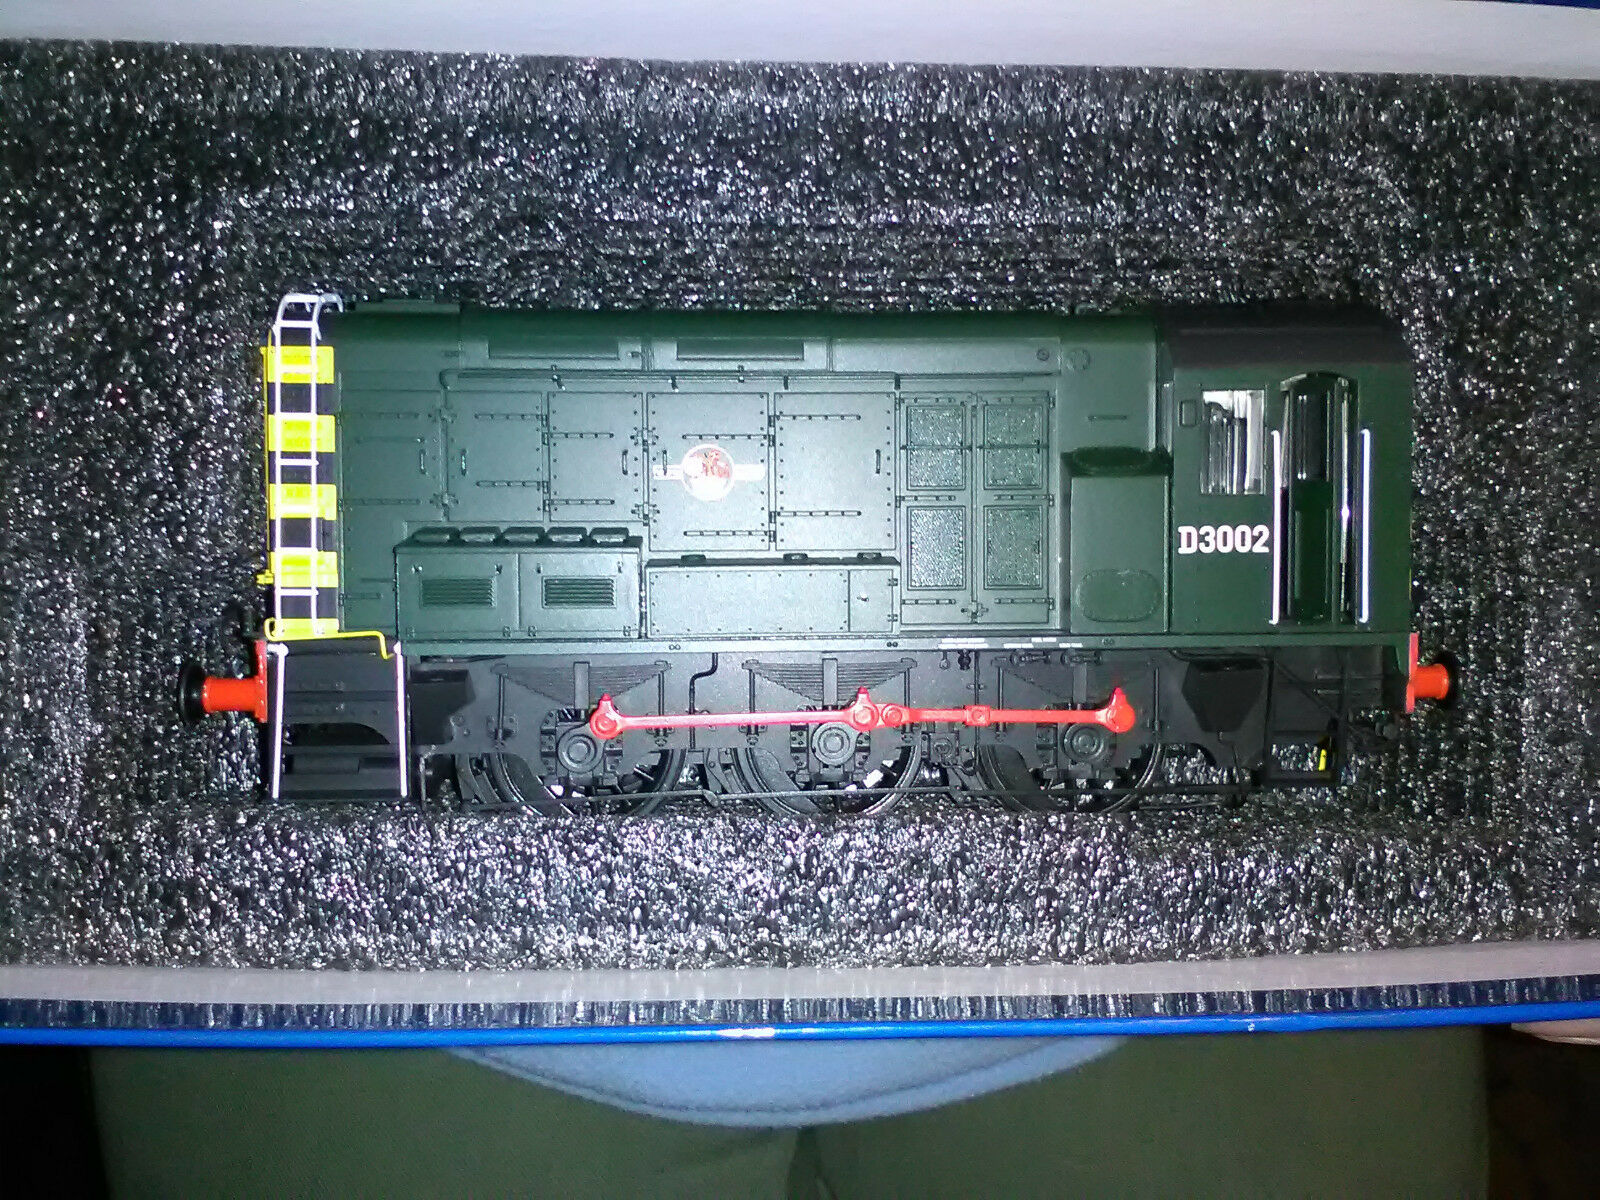 Dapol 7D-008-009 BR verde classe 08 diesel shunter locomotive locomotive locomotive D3002 O gauge BNIB 744700